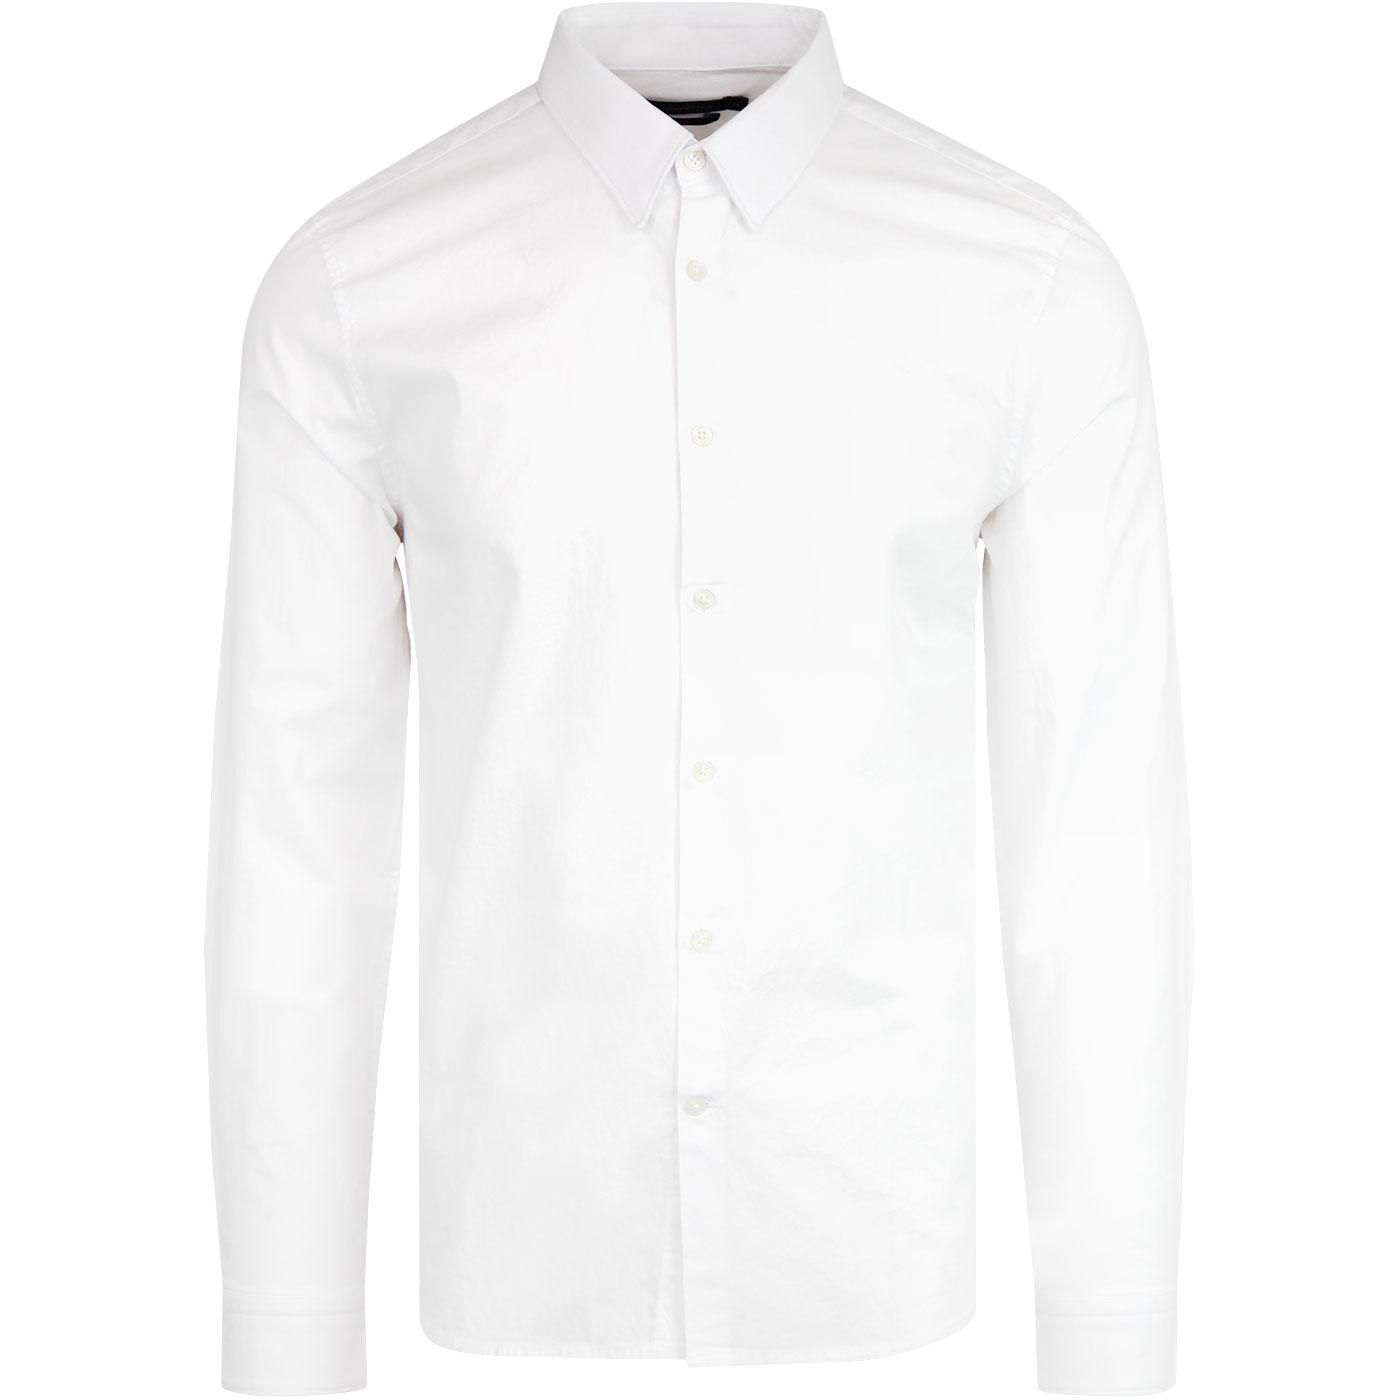 FRENCH CONNECTION Stretch Poplin Mod Shirt White